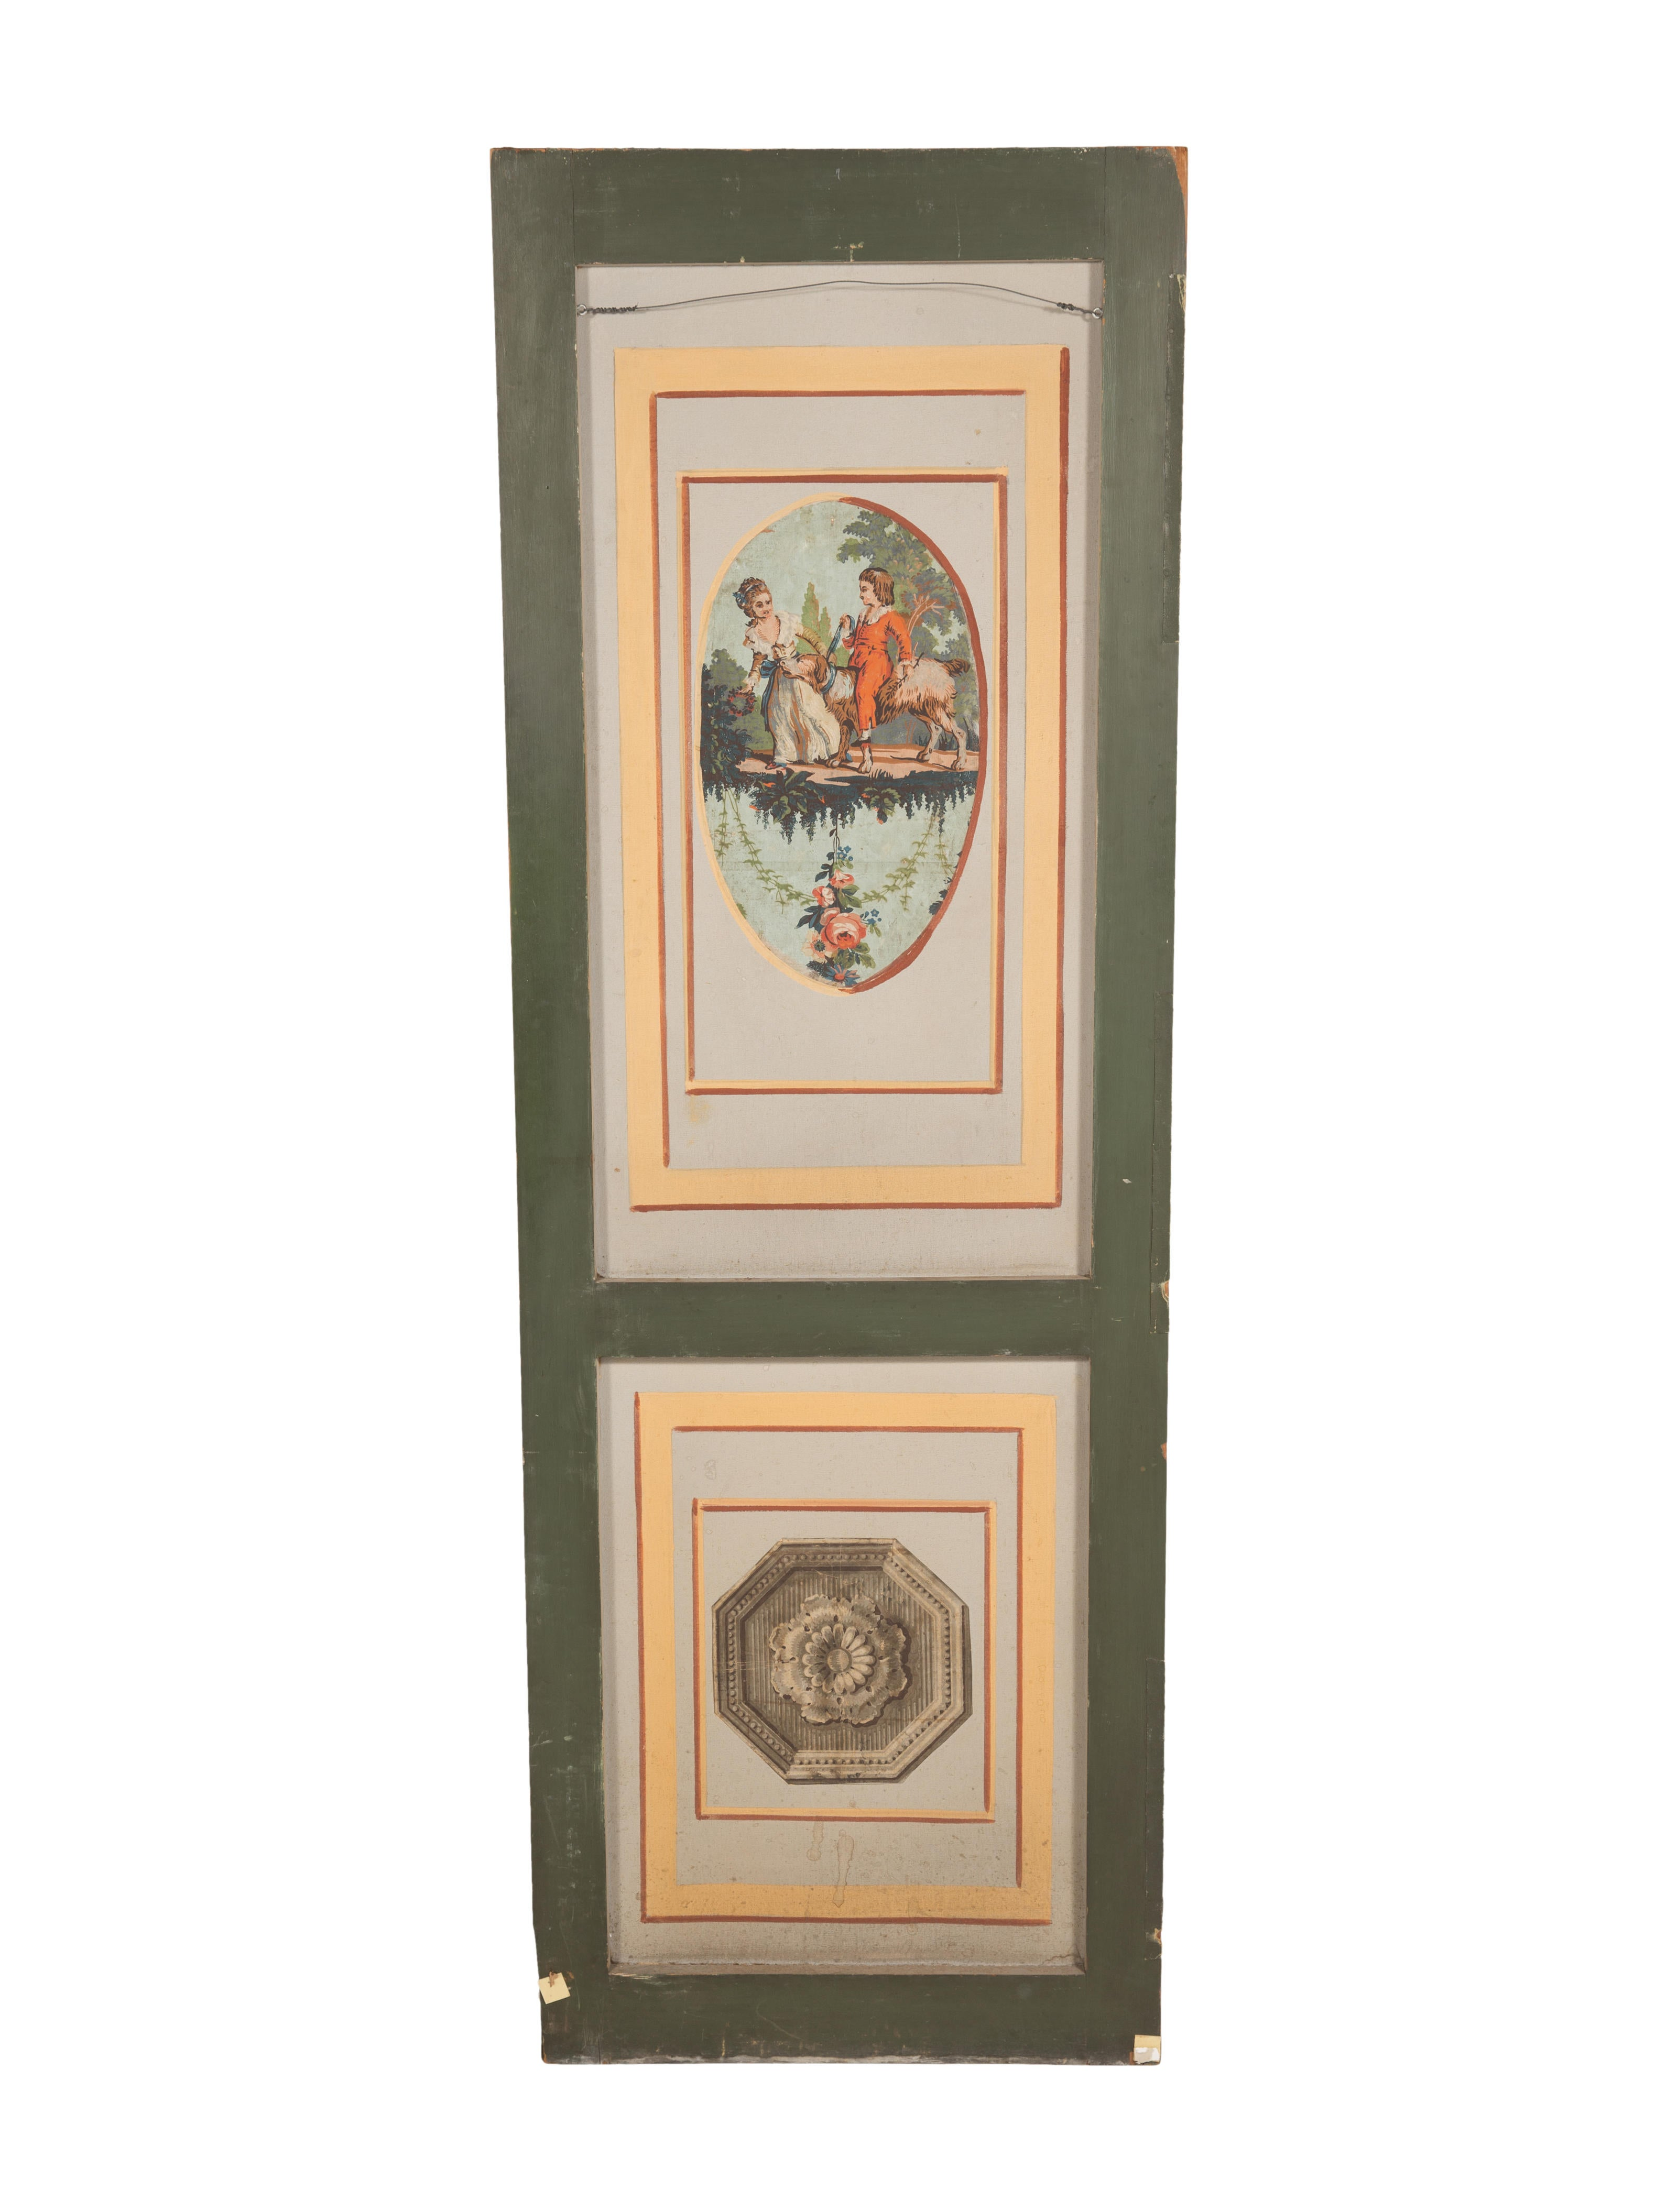 French 19th century hand painted door panel decor and for Home decor accessories